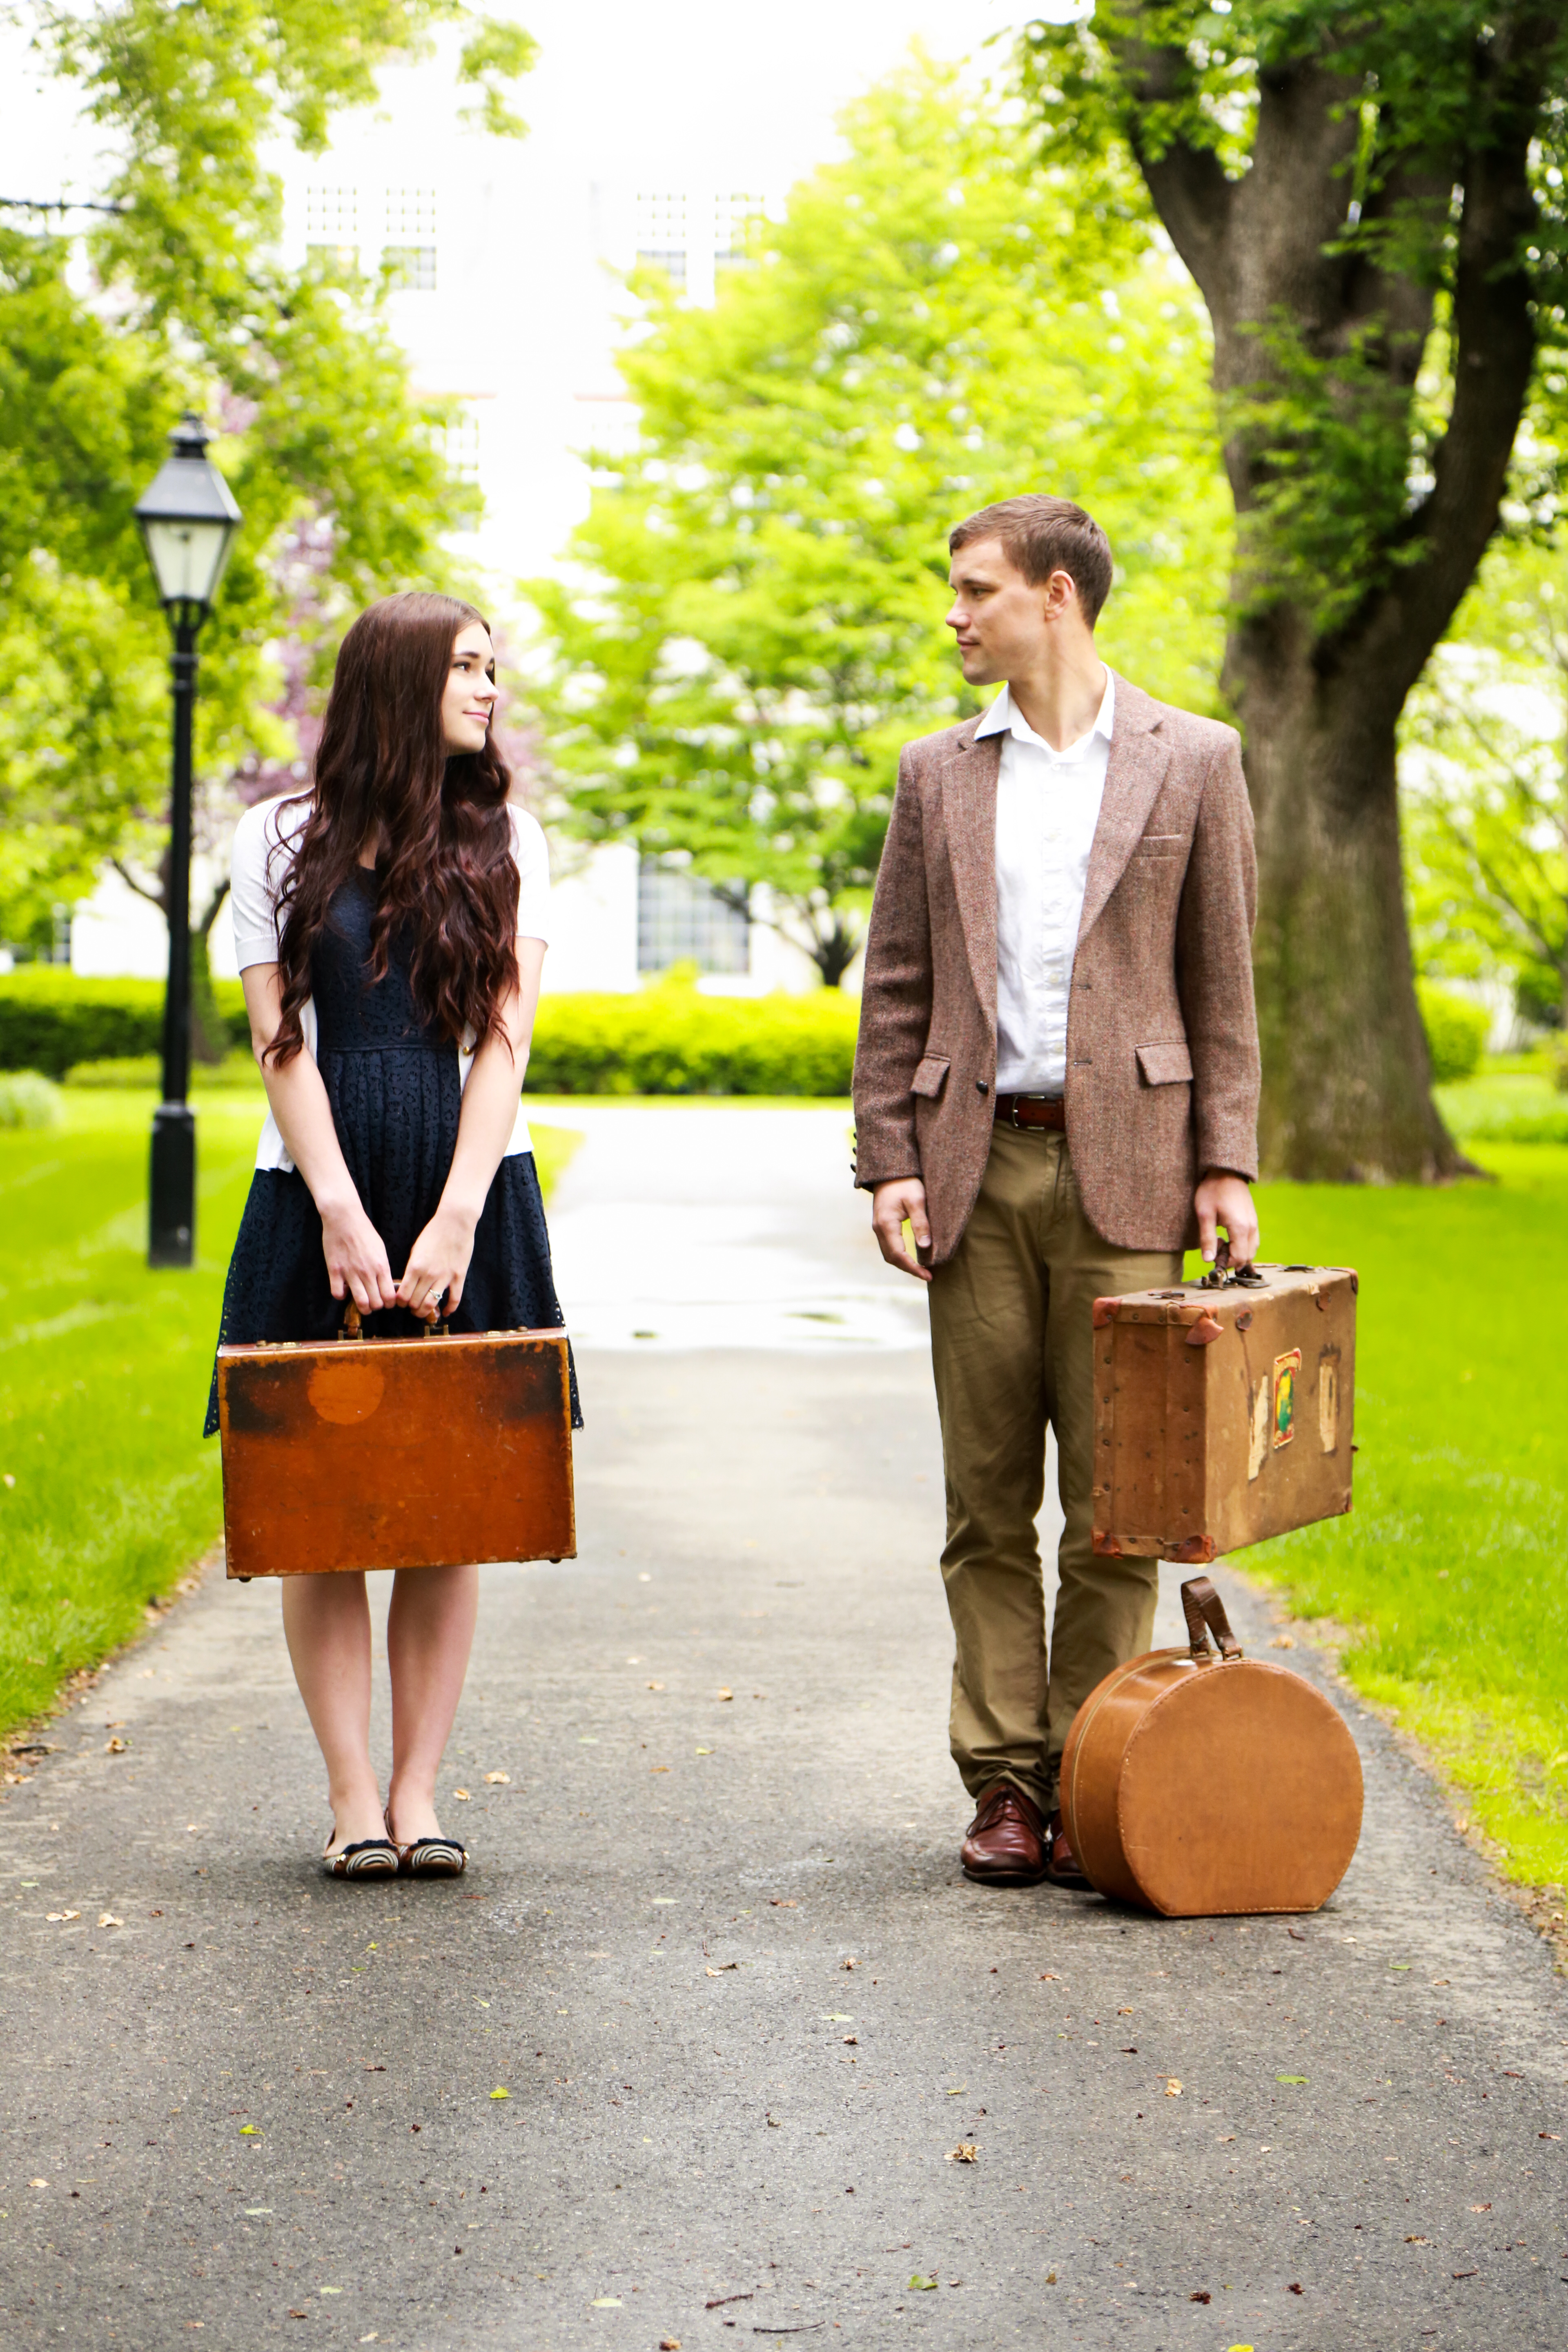 Travel companions for singles